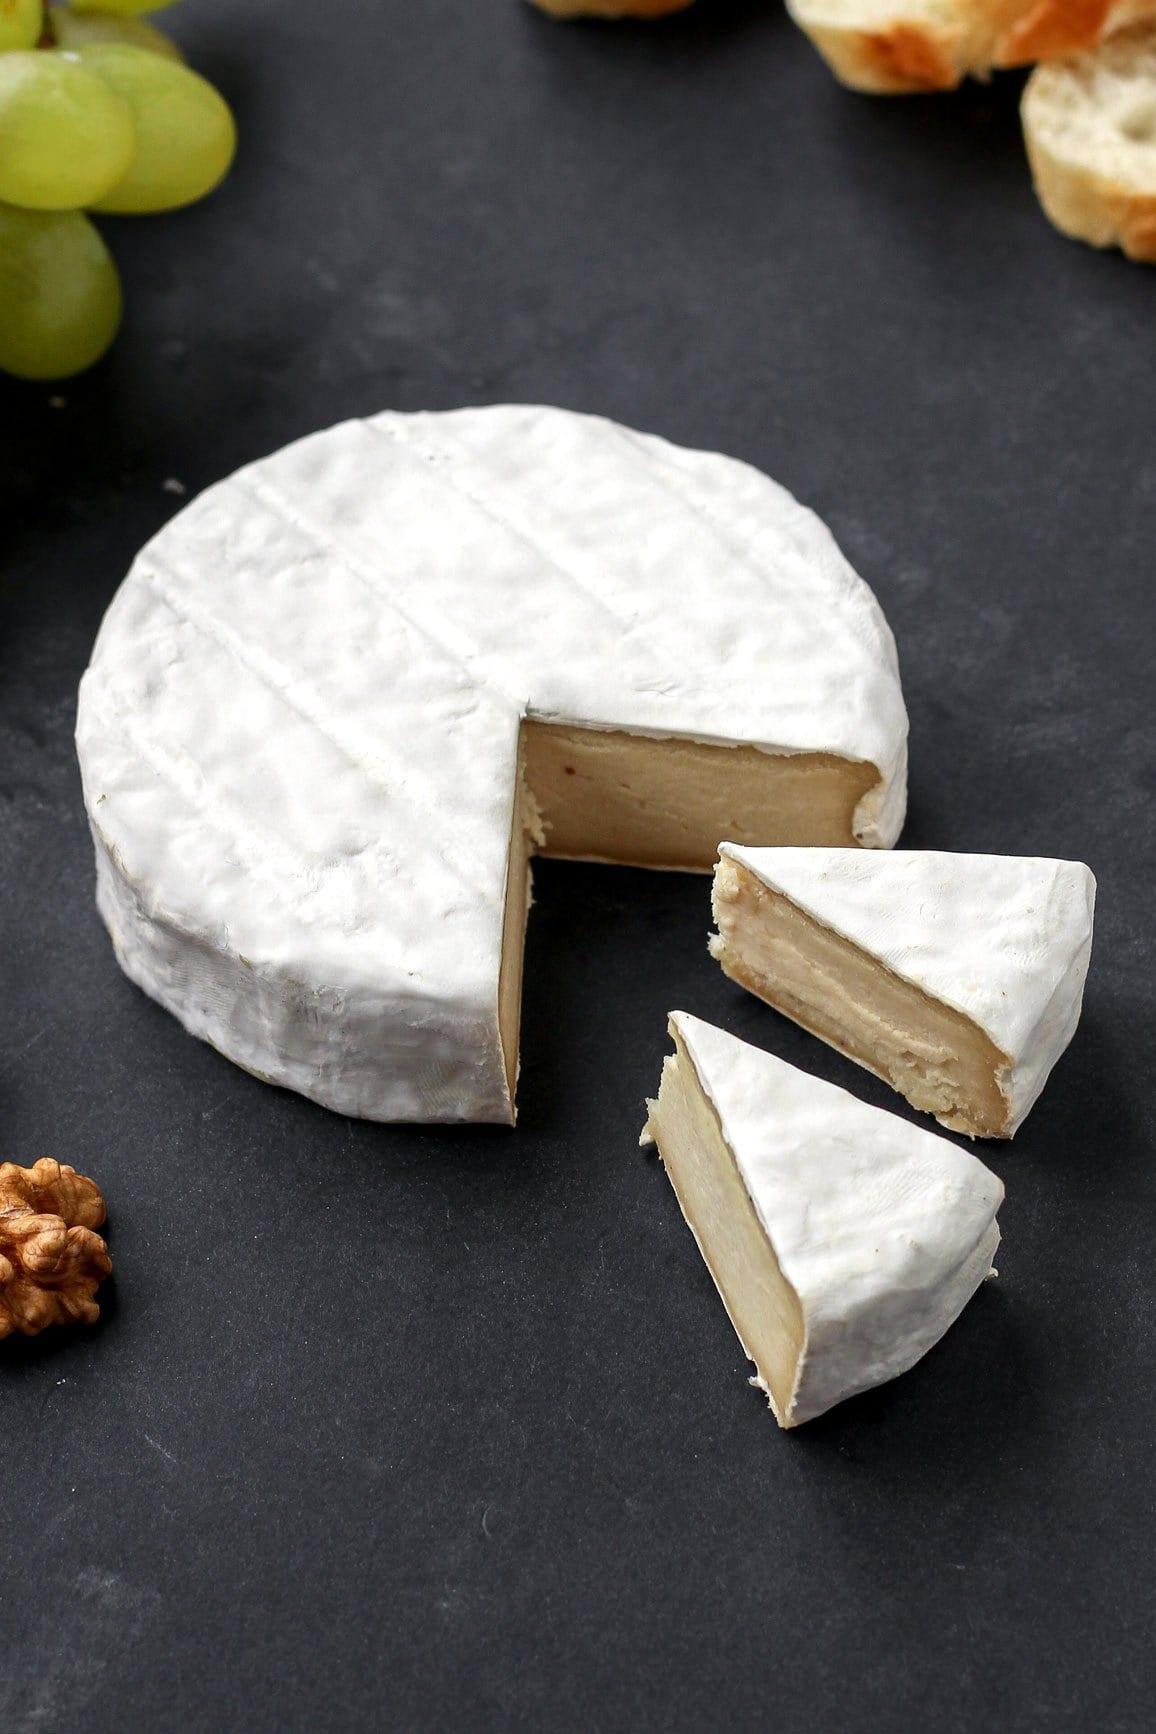 Slices of vegan camembert cheese on a black background.